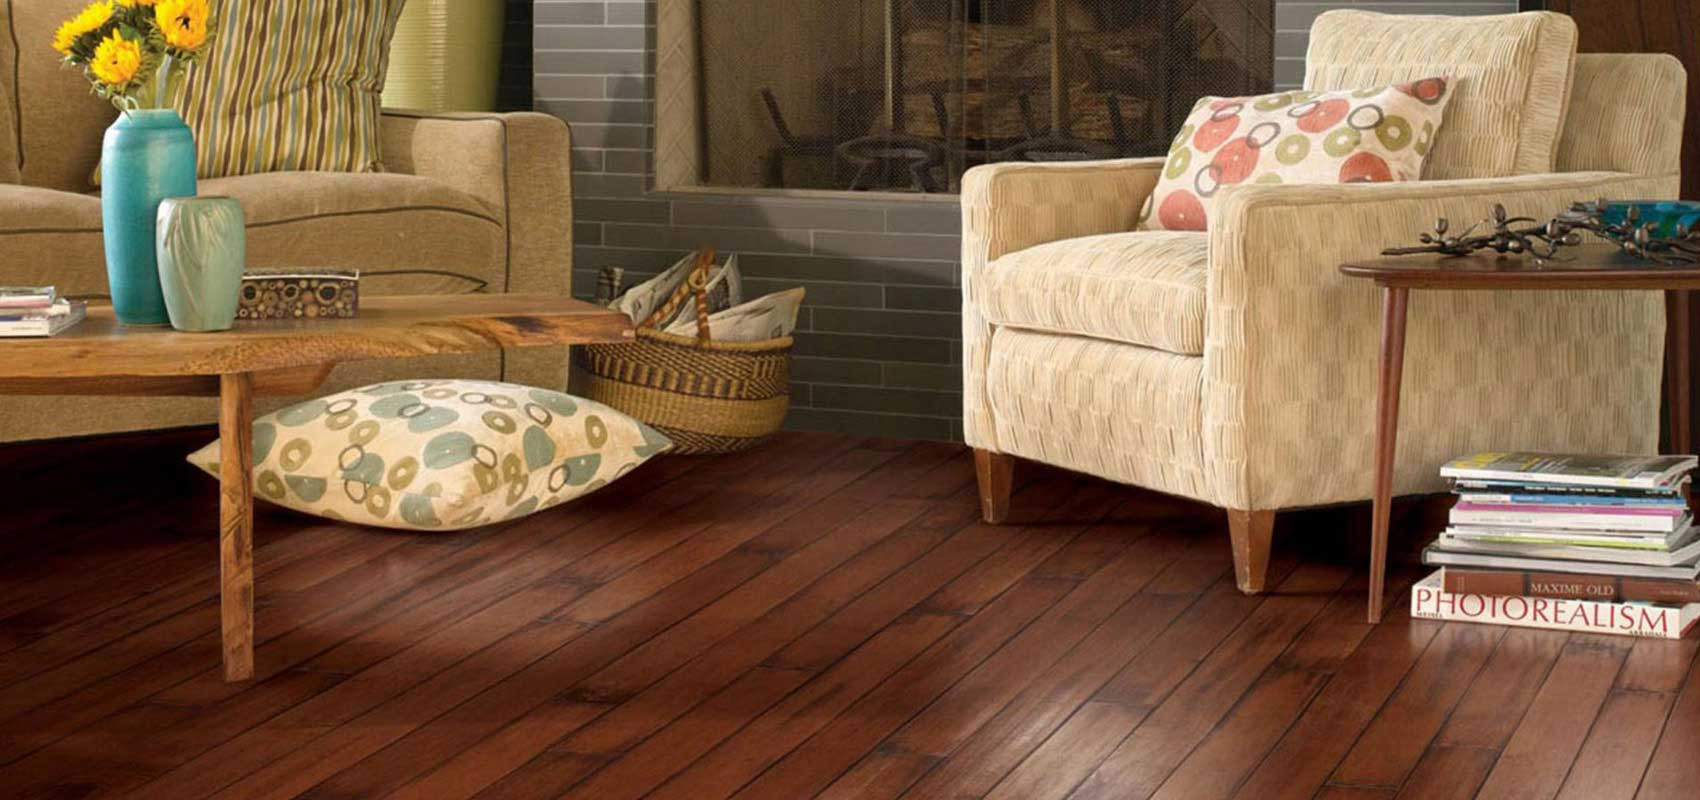 gray hardwood floor examples of alluring best white wood floors ideas on flooring living roomrdwood throughout full size of flooring services mckinney tx floors touch of adorable dark wood floor living room